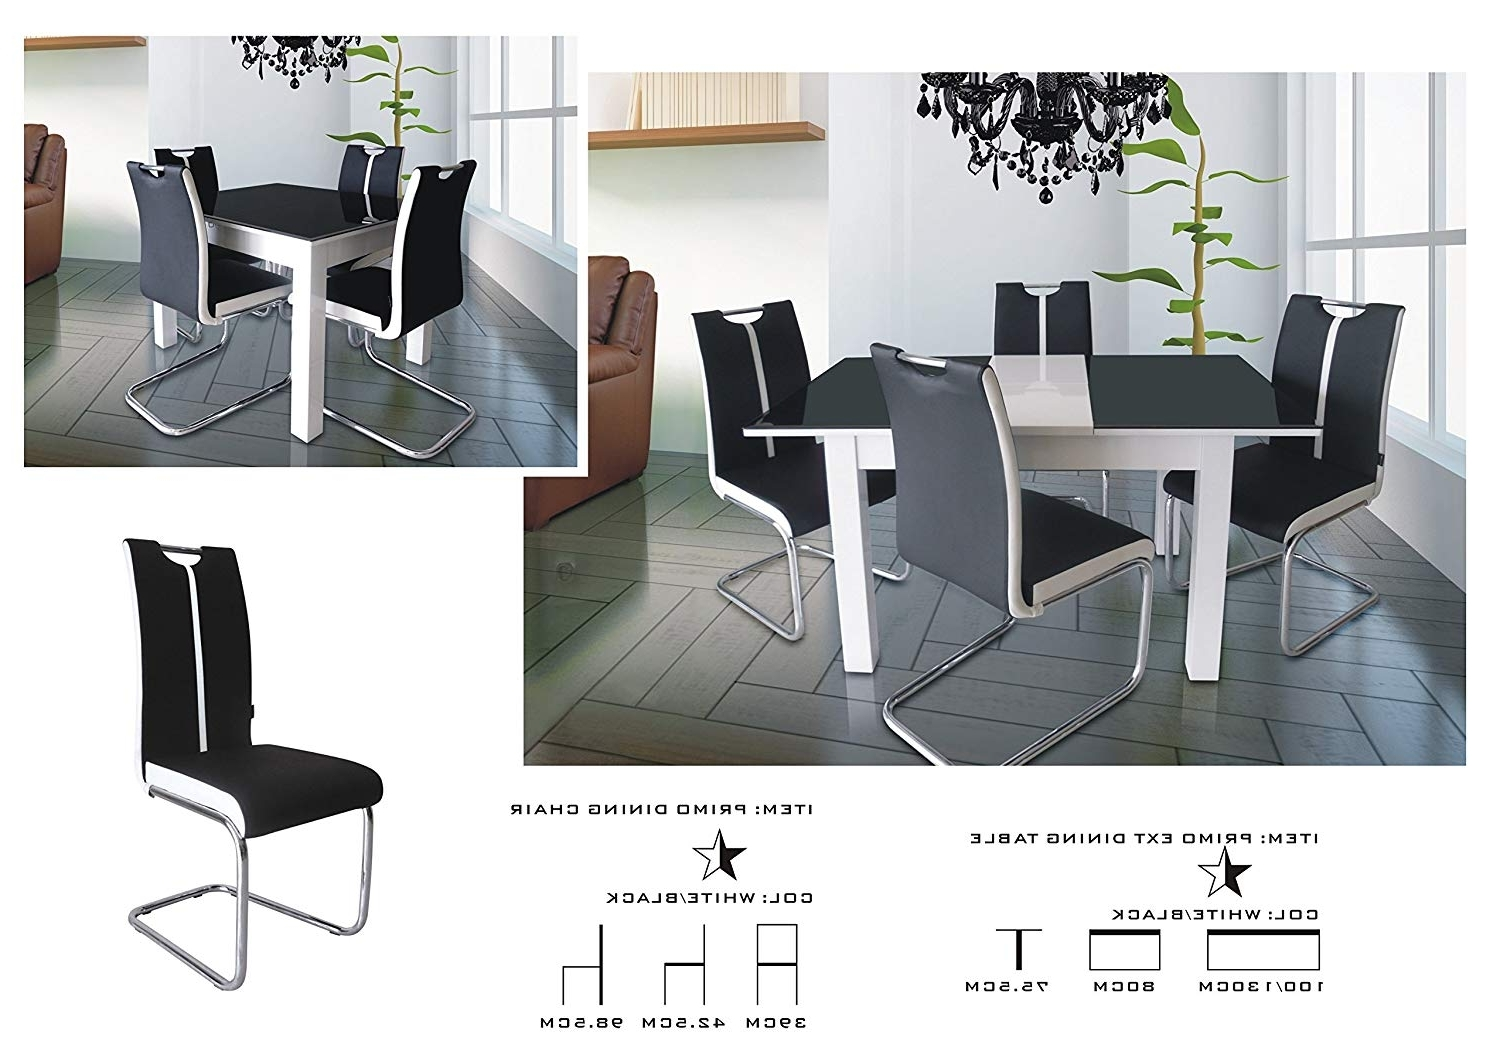 Extendable Dining Tables And 4 Chairs With Regard To Famous Modernique® Primo Extending Dining Table And 4 Chairs, Dining Table (View 4 of 25)